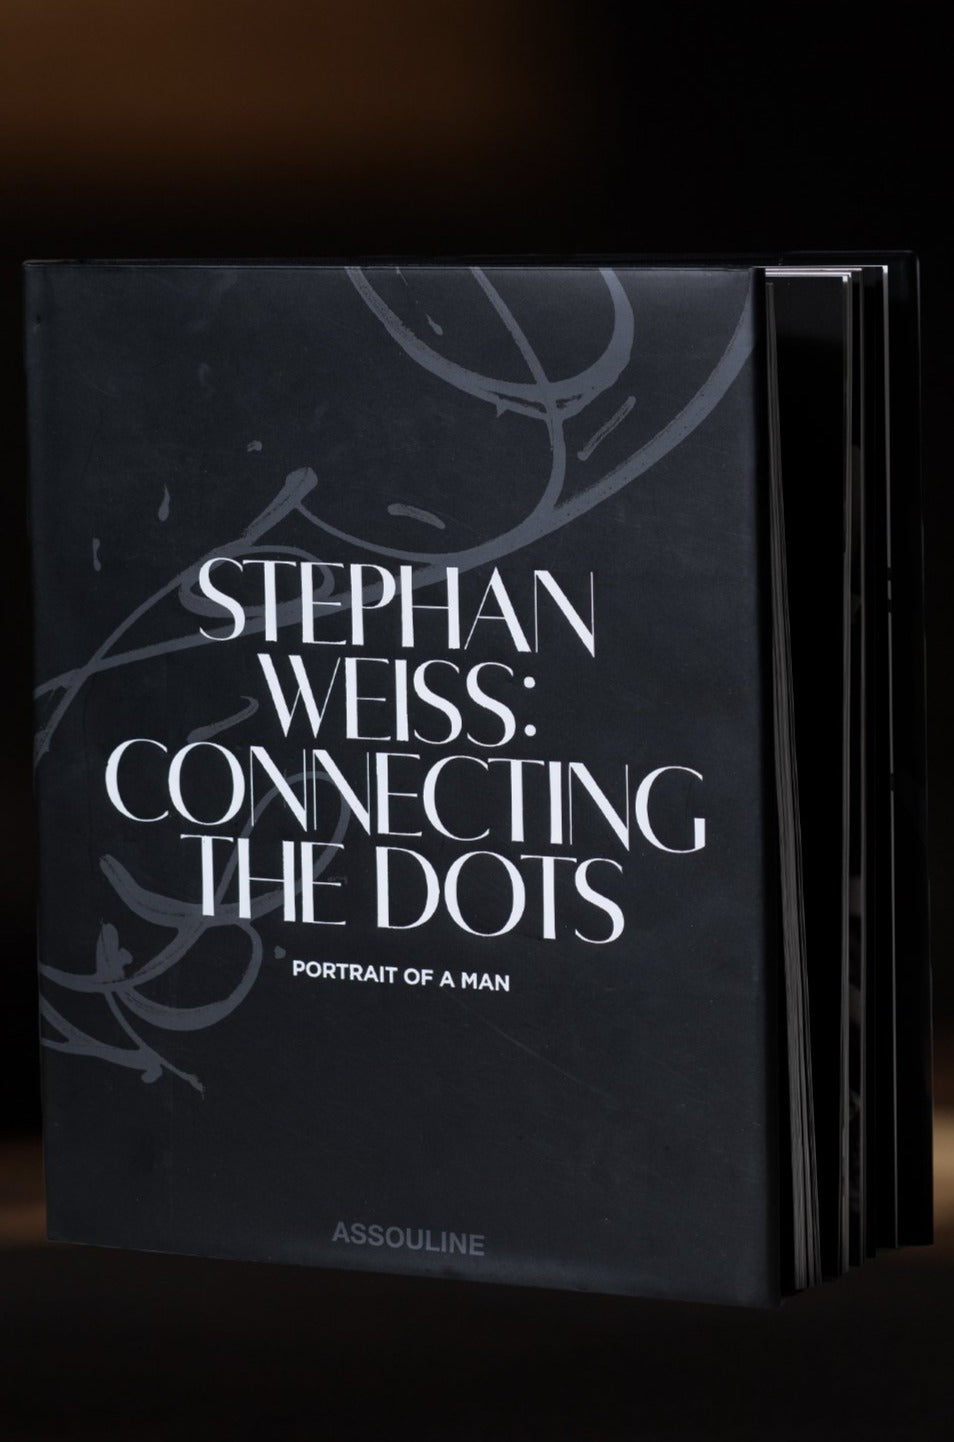 Stephan Weiss: Connecting the Dots Stephan Weiss: Connecting the Dots